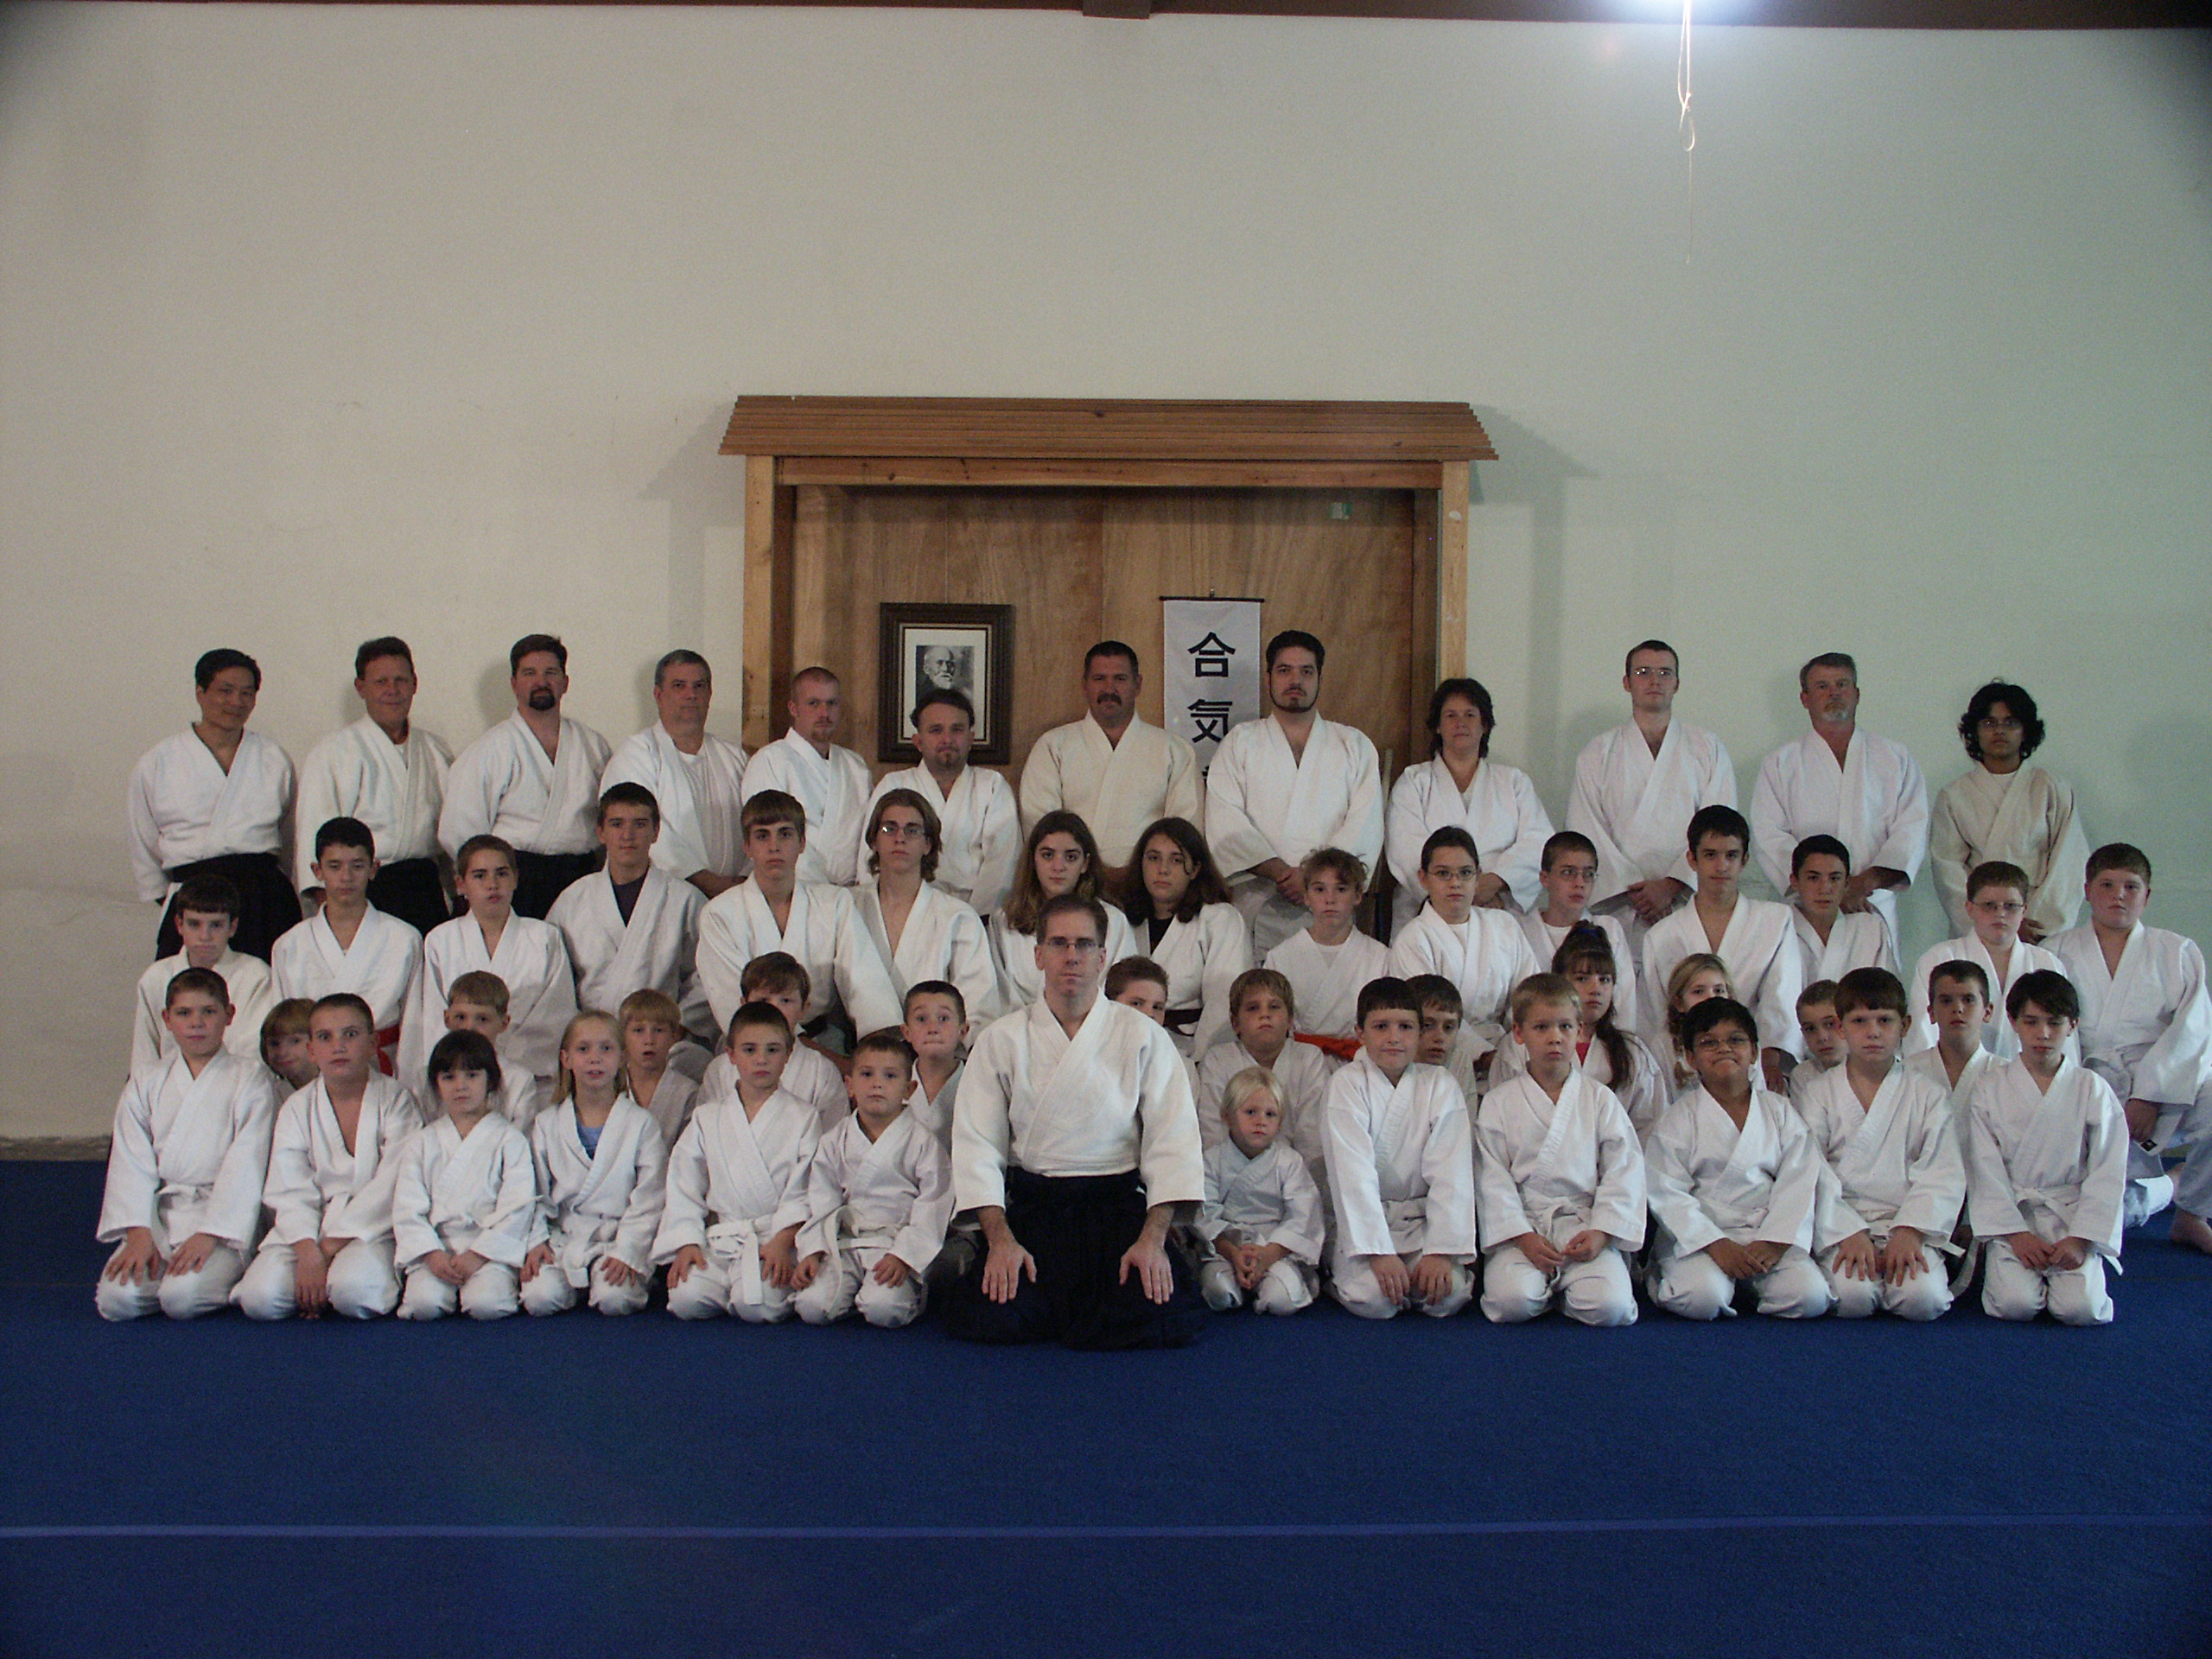 Aikido Students at Aikido Schools of North Georgia